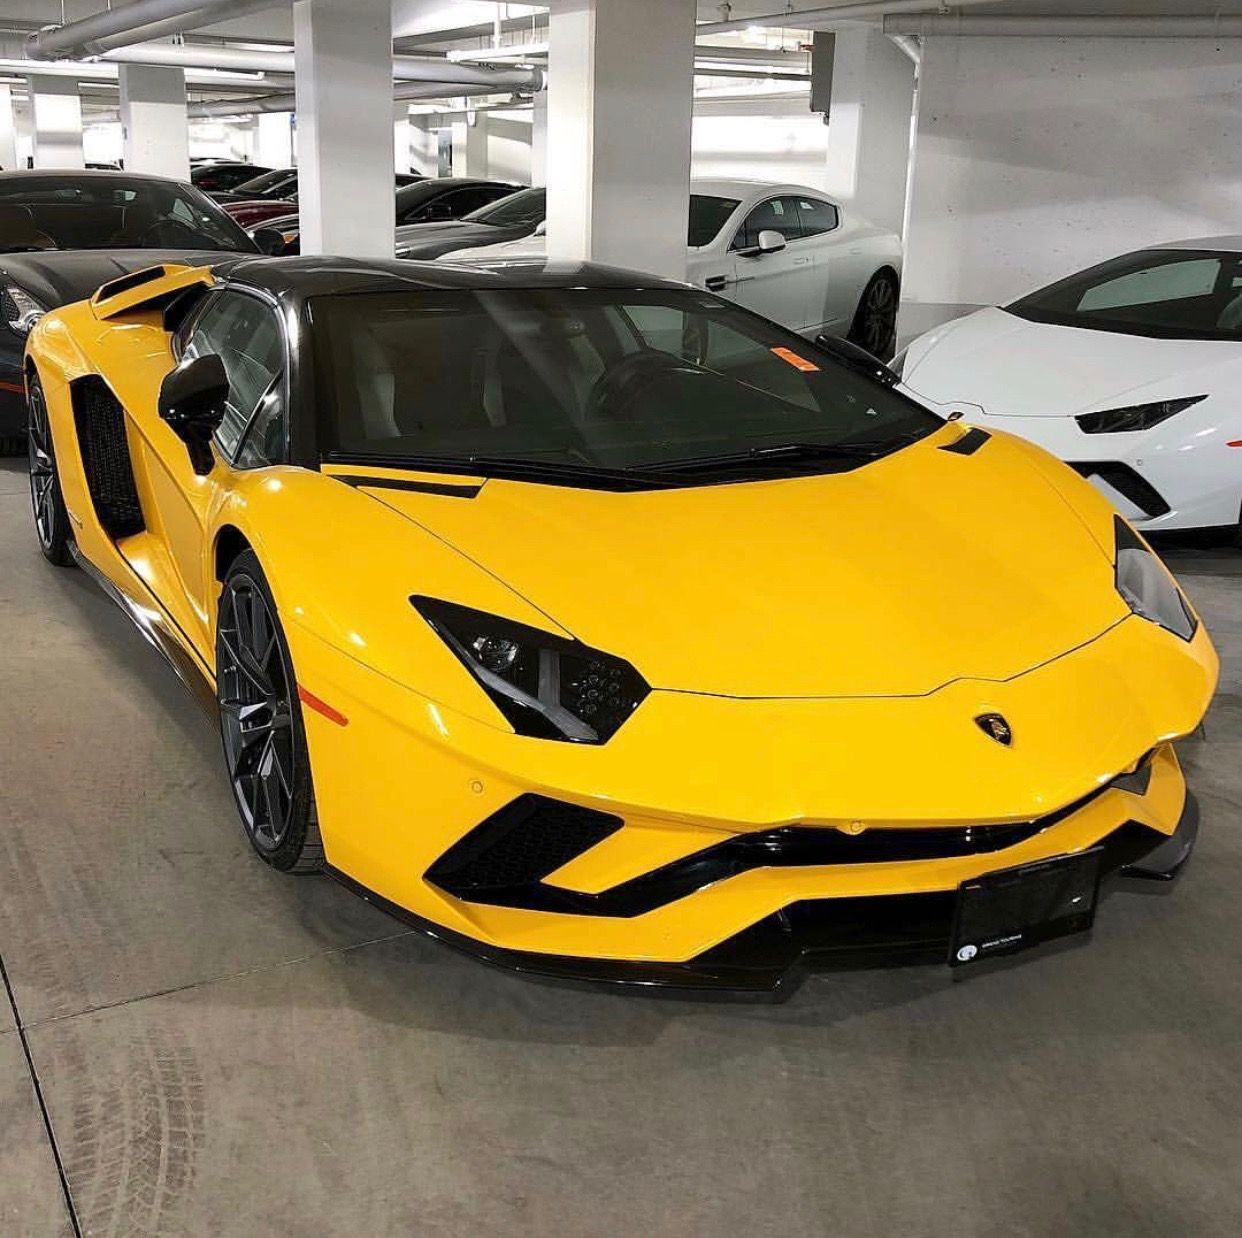 Lamborghini Aventador S Roadster painted in Giallo Orion Photo taken on lamborghini diablo, lamborghini egoista, lamborghini veneno, mercedes slr mclaren roadster, murcielago roadster, pagani zonda roadster, lamborghini reventon, lamborghini sesto elemento, lamborghini gallardo roadster, nissan 370z roadster, zonda f roadster, lamborghini huracan, lamborghini estoque, lexus lfa roadster, lamborghini miura, lamborghini murcielago, mercedes sls amg roadster, lamborghini countach, bugatti roadster, lamborghini replica,